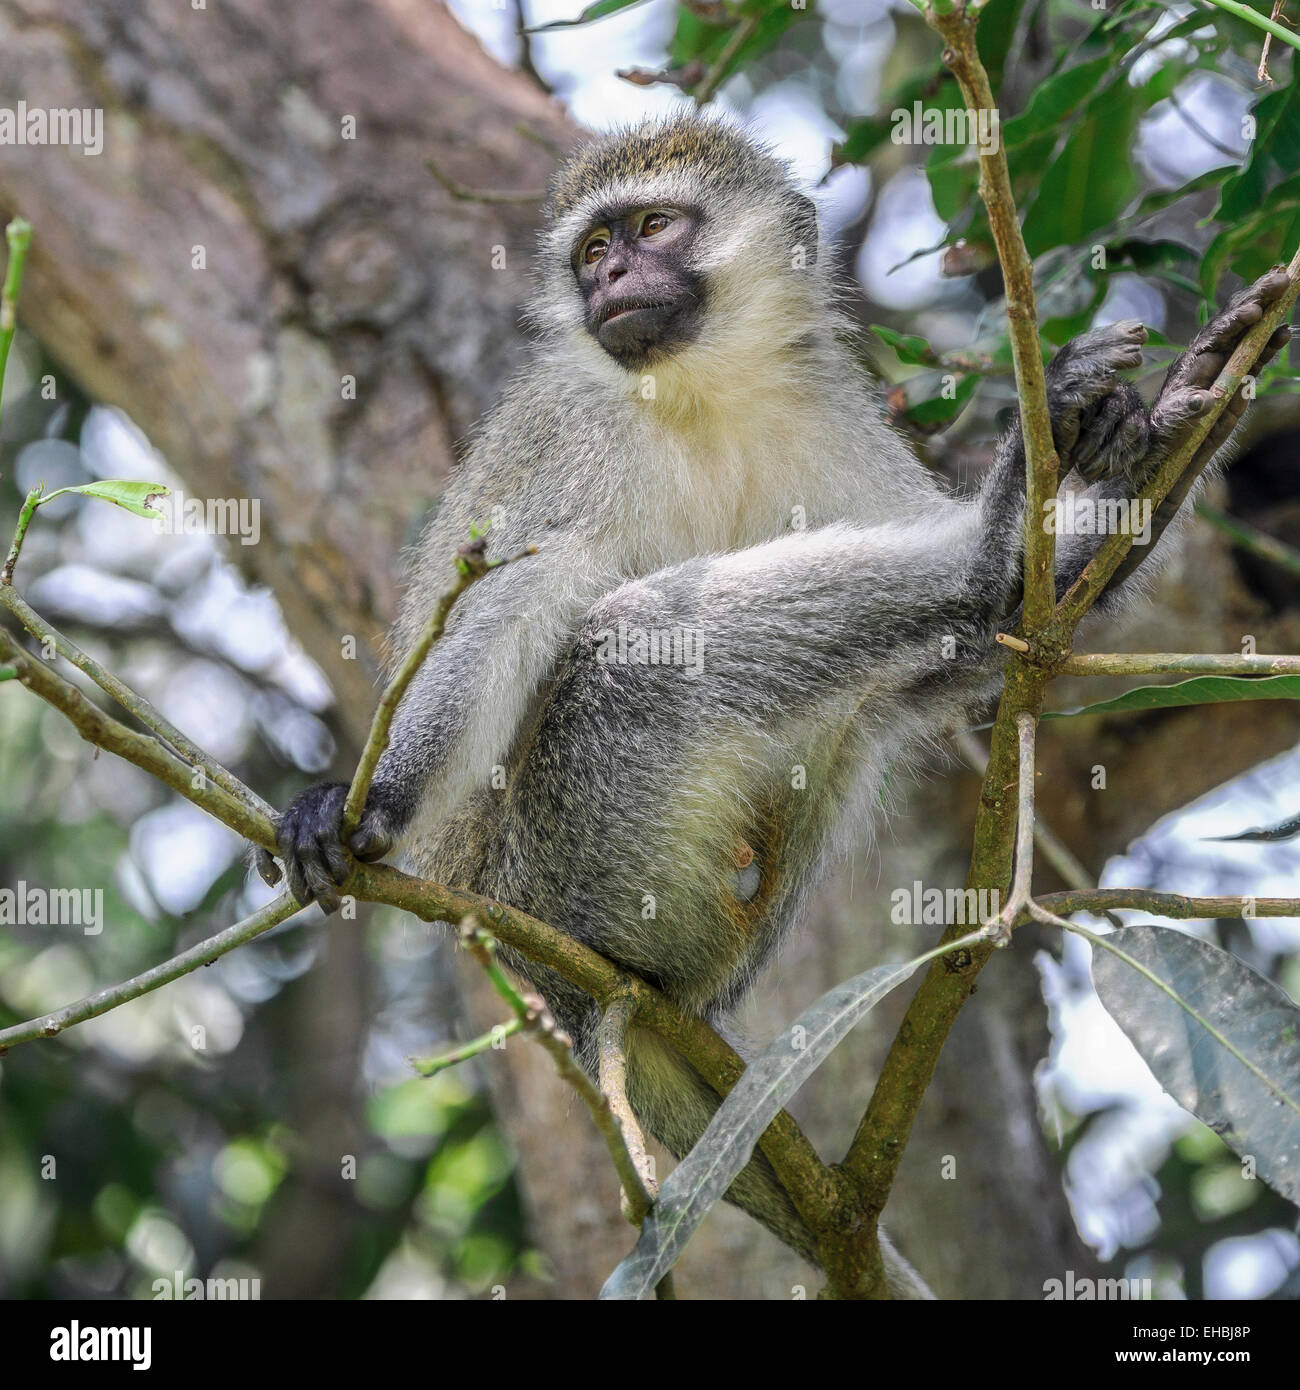 Adult a vervet monkey, an Old World monkey sat up a tree in Entebbe Botanical Gardens, Uganda. Square format. - Stock Image